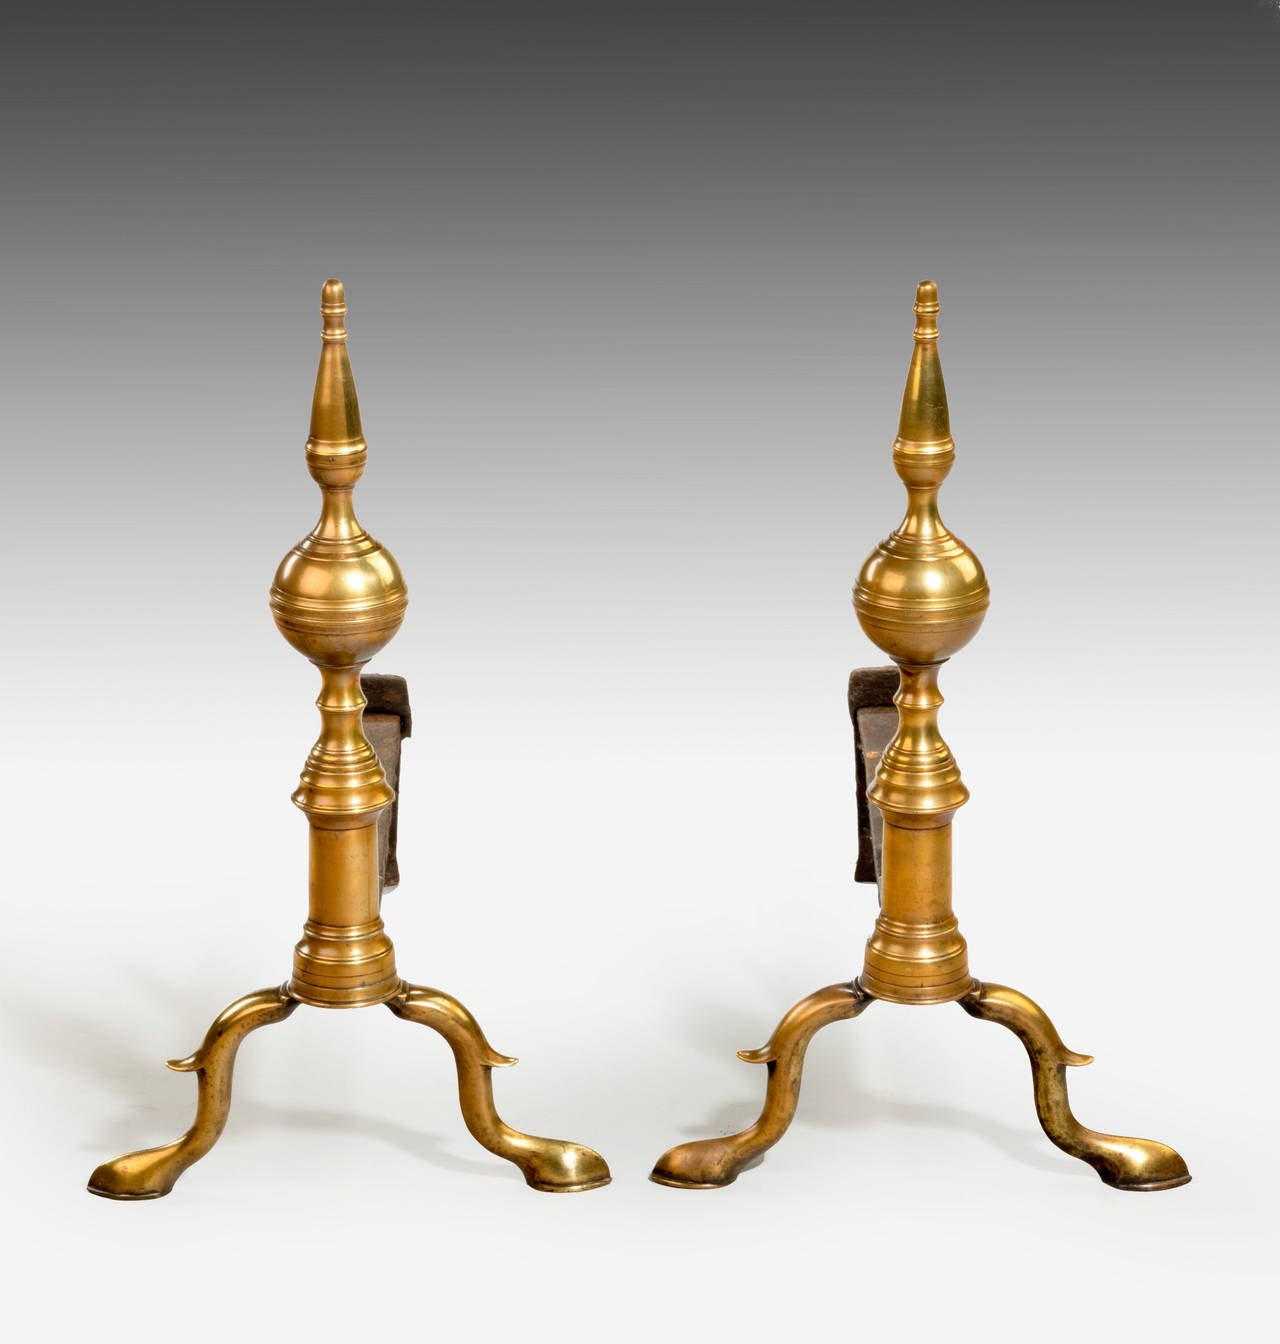 An attractive and well made pair of Andirons of conciliar form. Resting on pad feet.   An andiron is a horizontal iron bar upon which logs are laid for burning in an open fireplace. They are usually used in pairs to build up a firedog in American